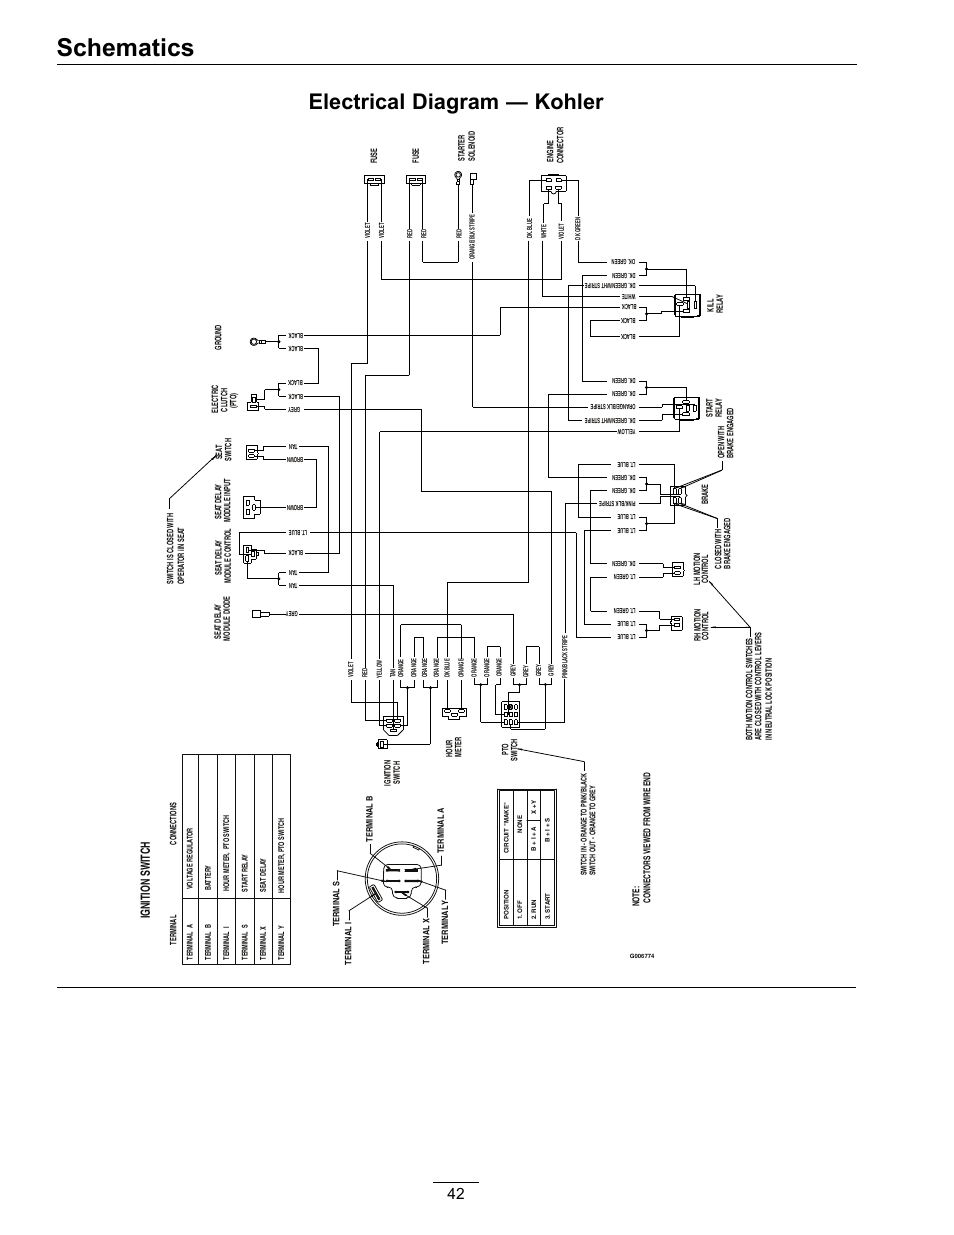 exmark lazer z hp 565 page42 schematics, electrical diagram kohler, ignition switch exmark exmark wiring diagram at edmiracle.co